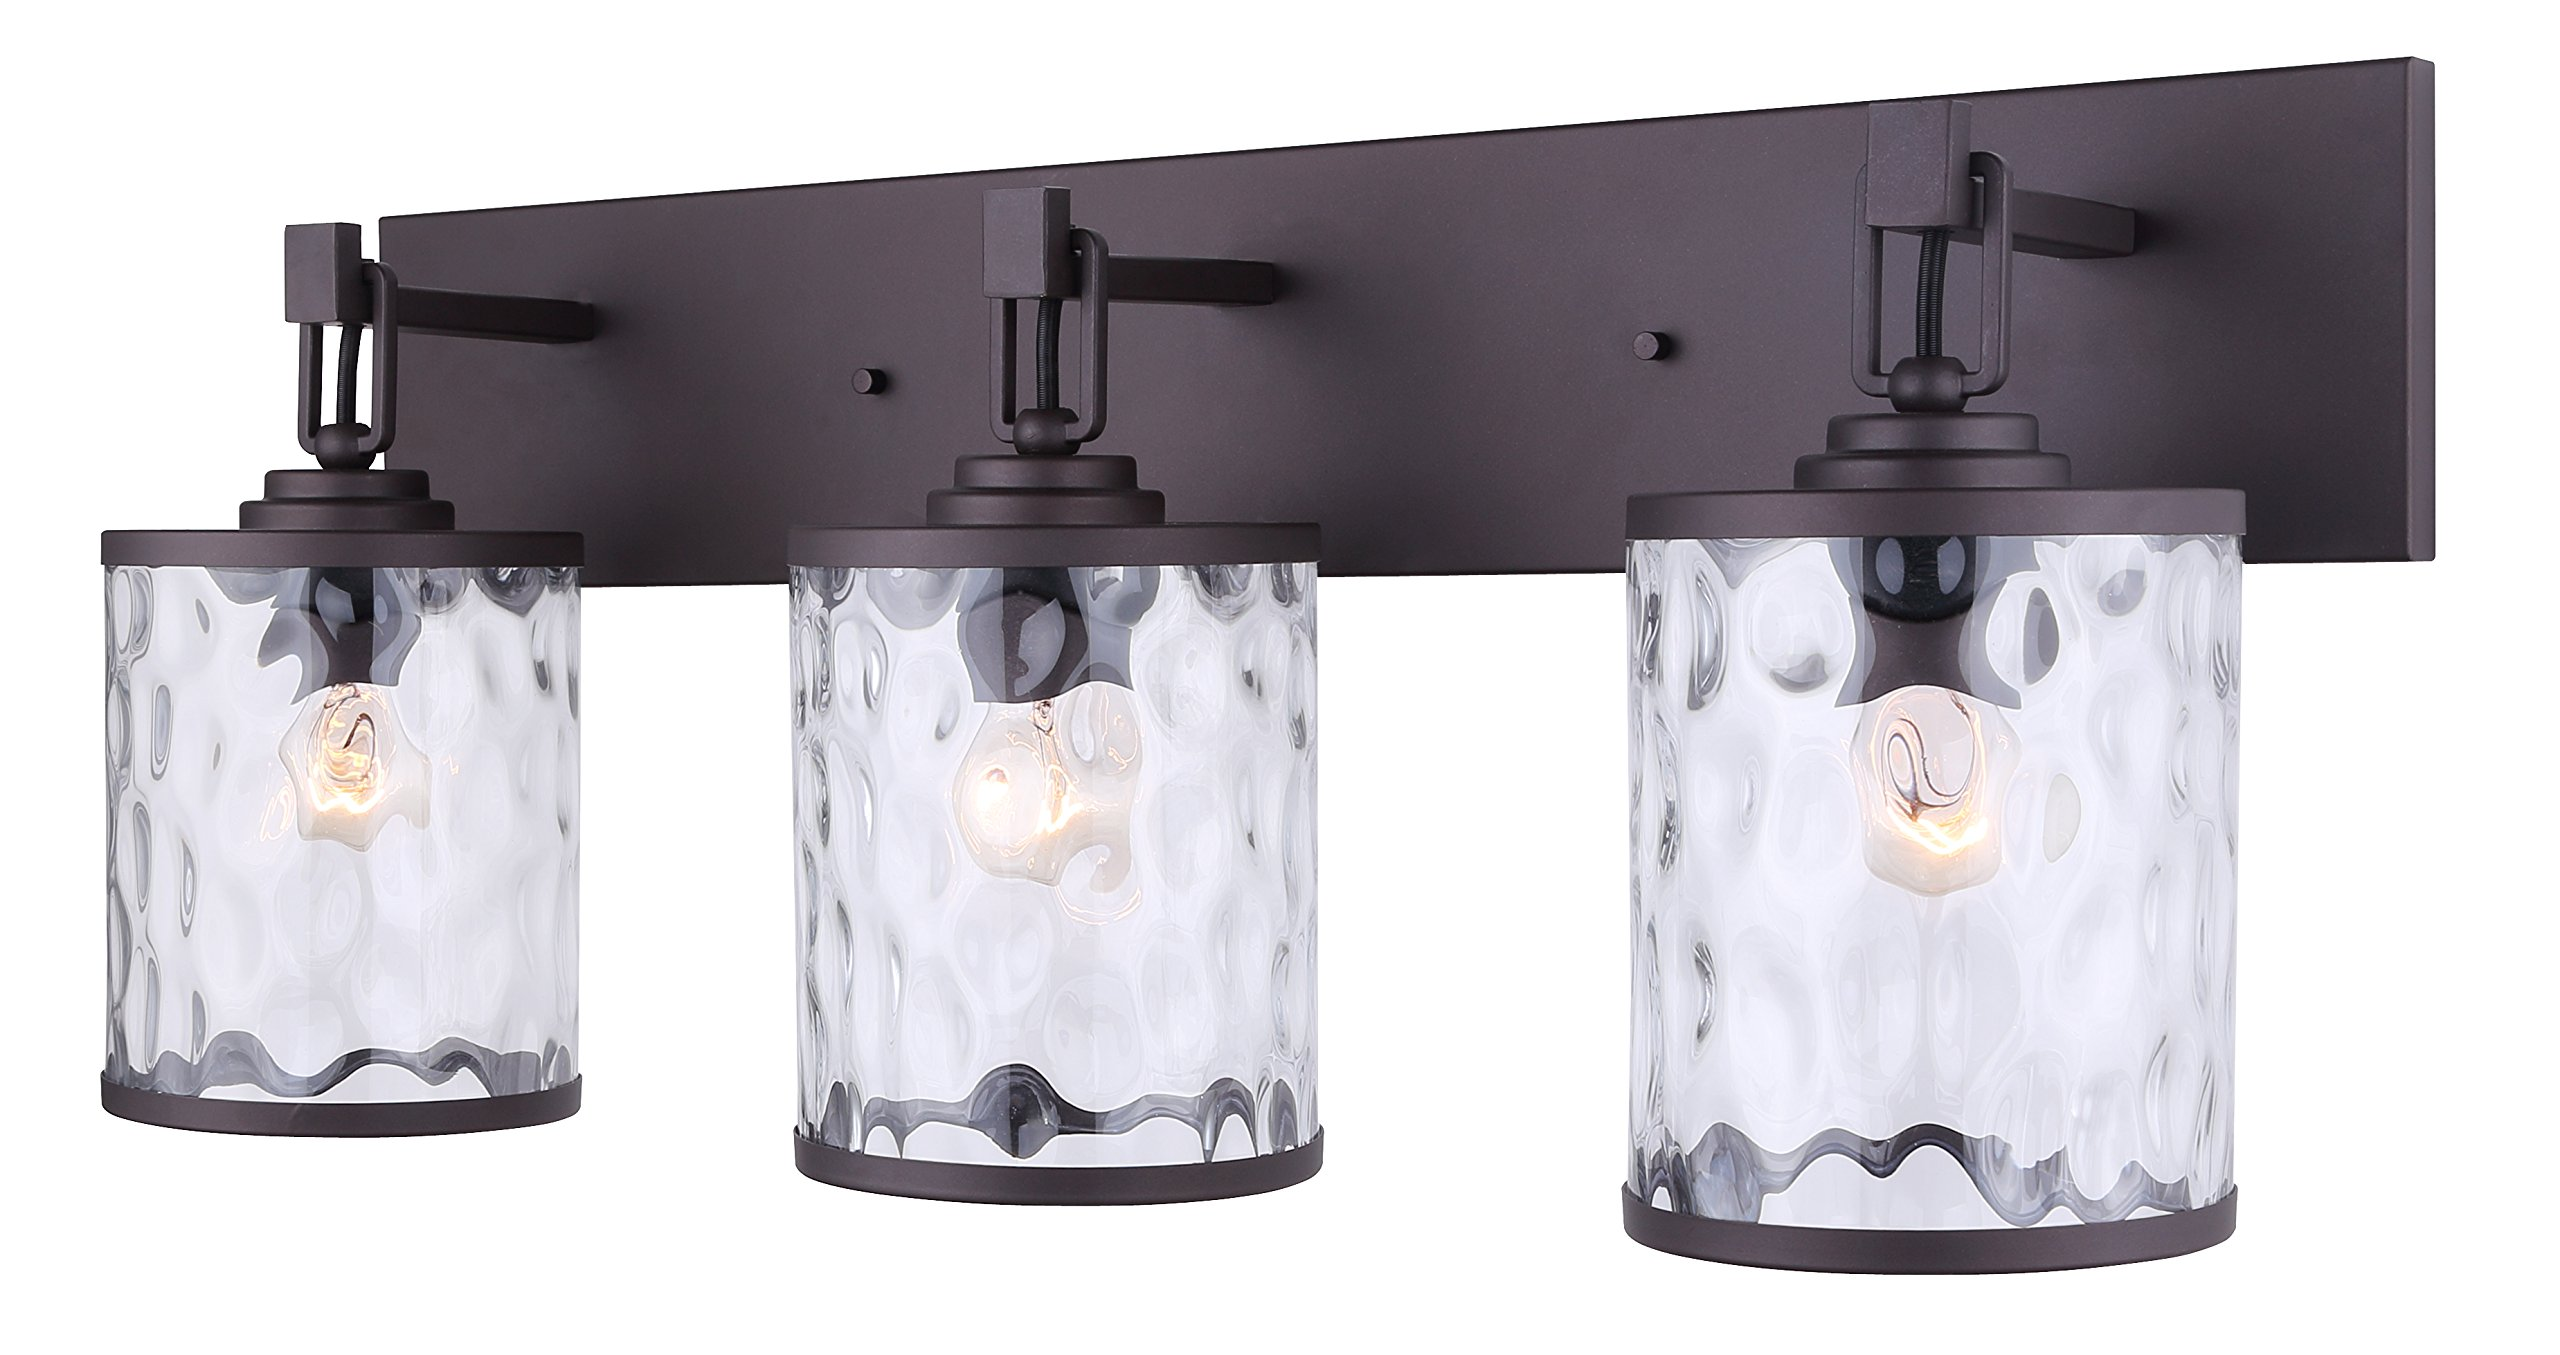 Canarm Cala 3 Light Vanity Light with Watermark Glass - Oil Rubbed Bronze - Easy Connect Included